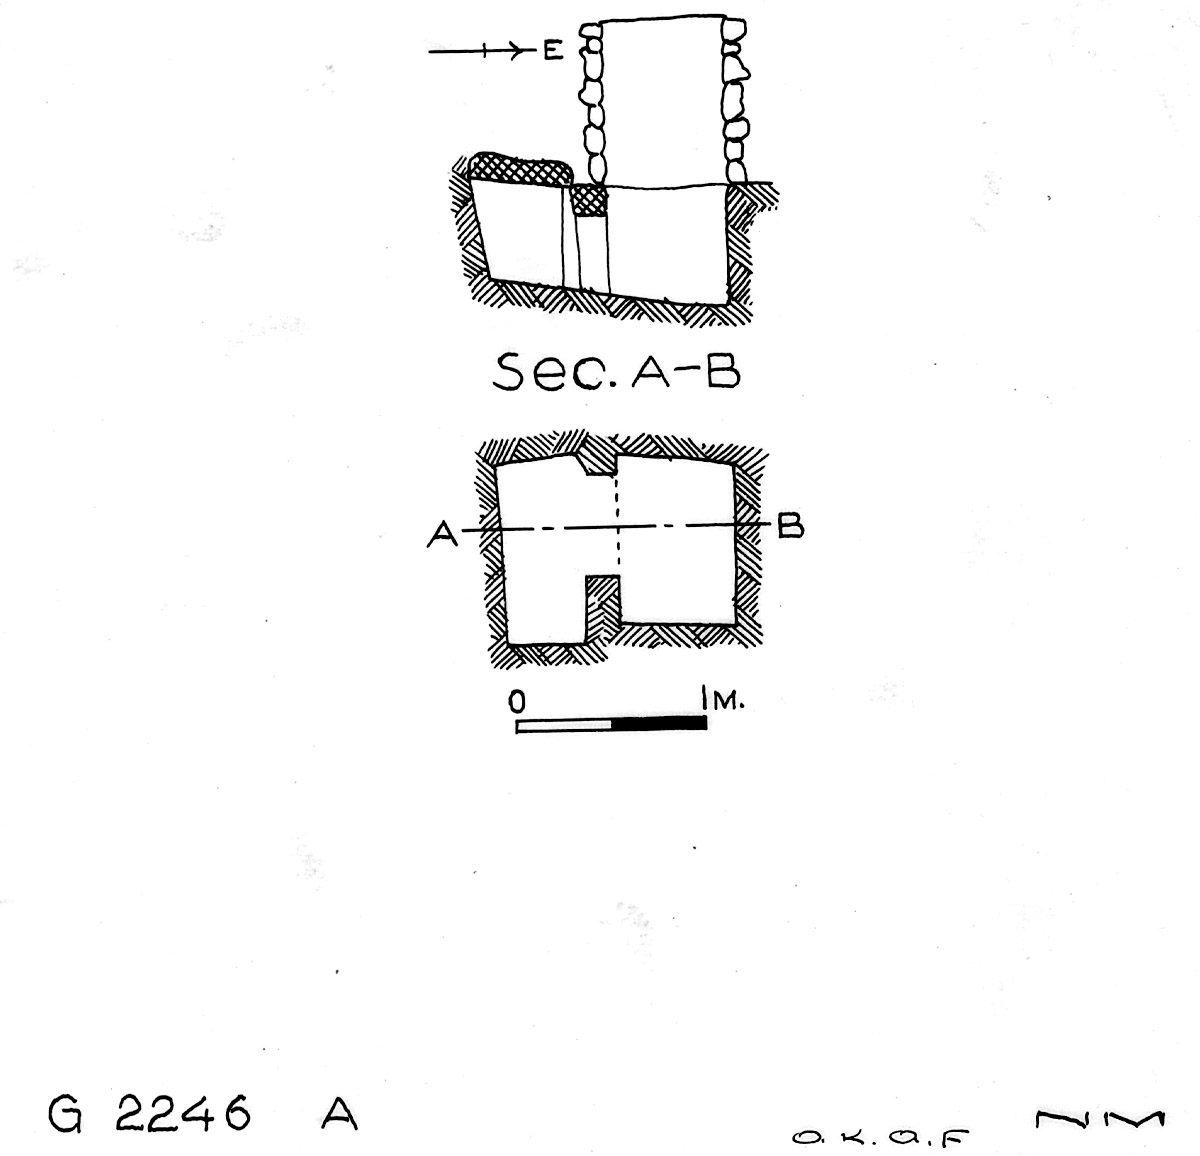 Maps and plans: G 2246, Shaft A